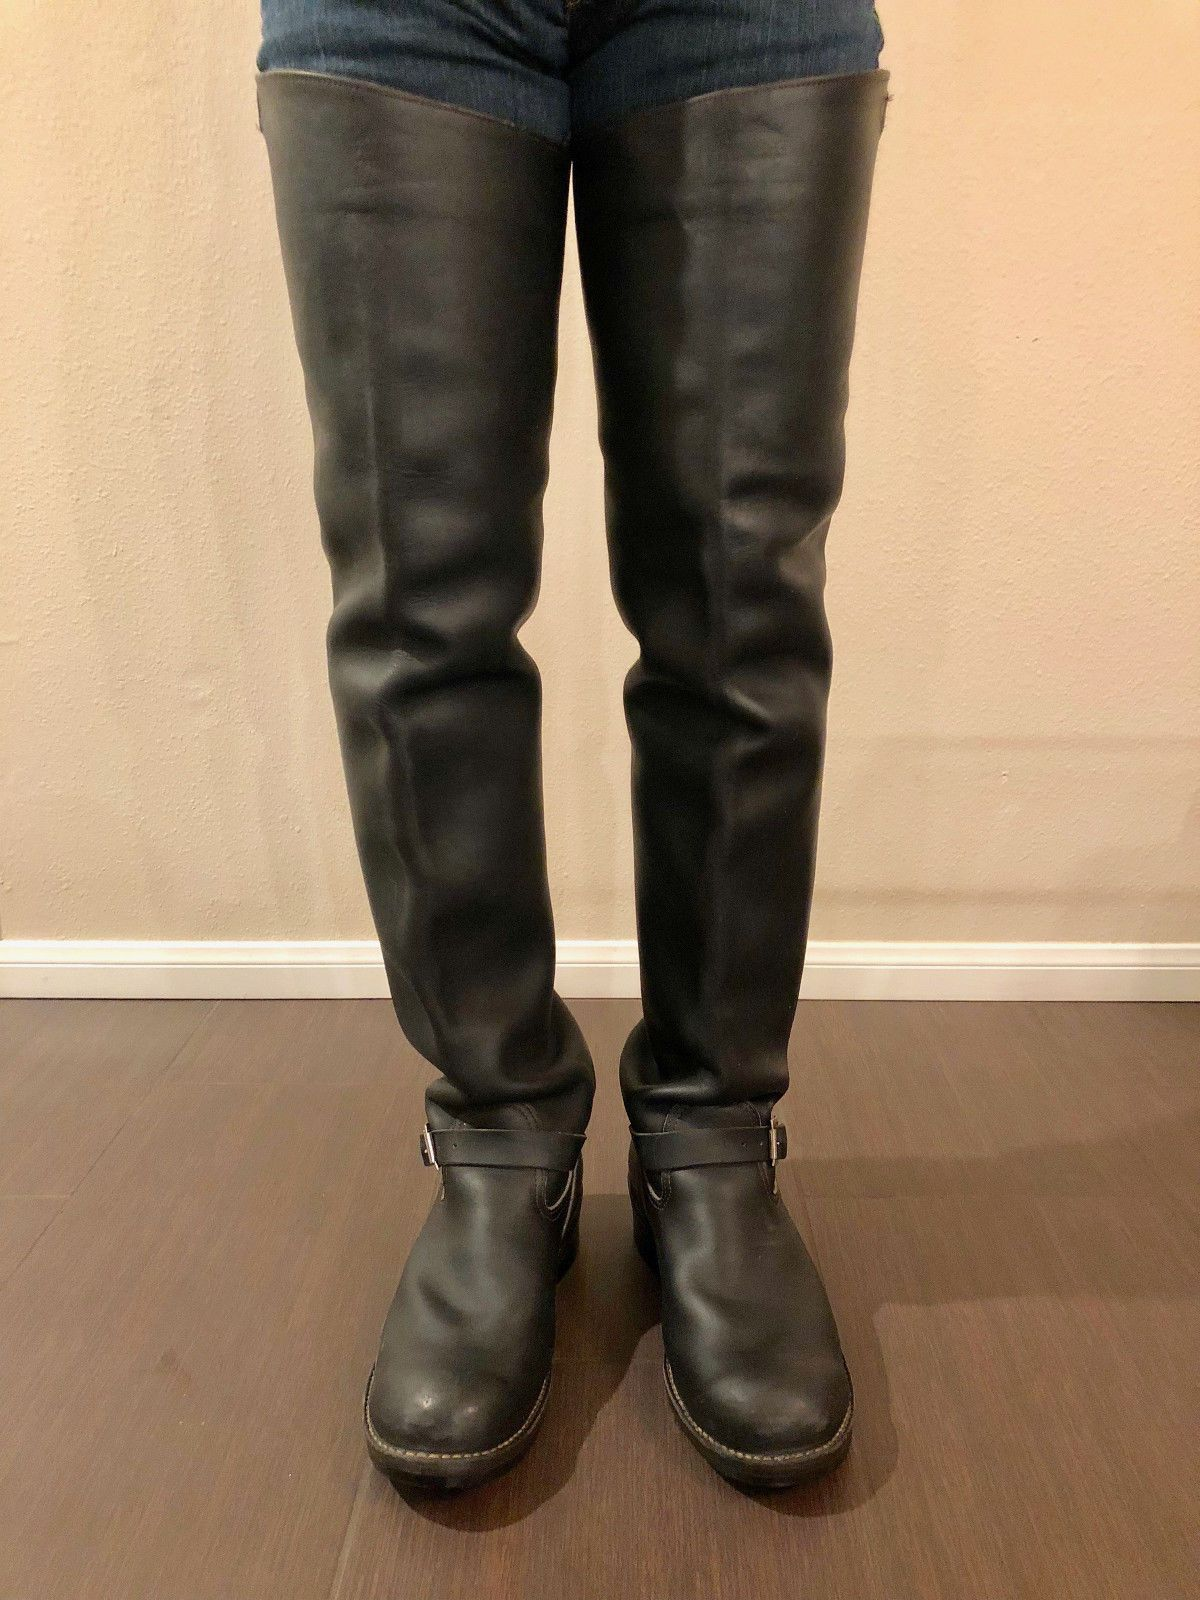 Used Wesco Thigh High Engineer Big Boss Boots Size 13